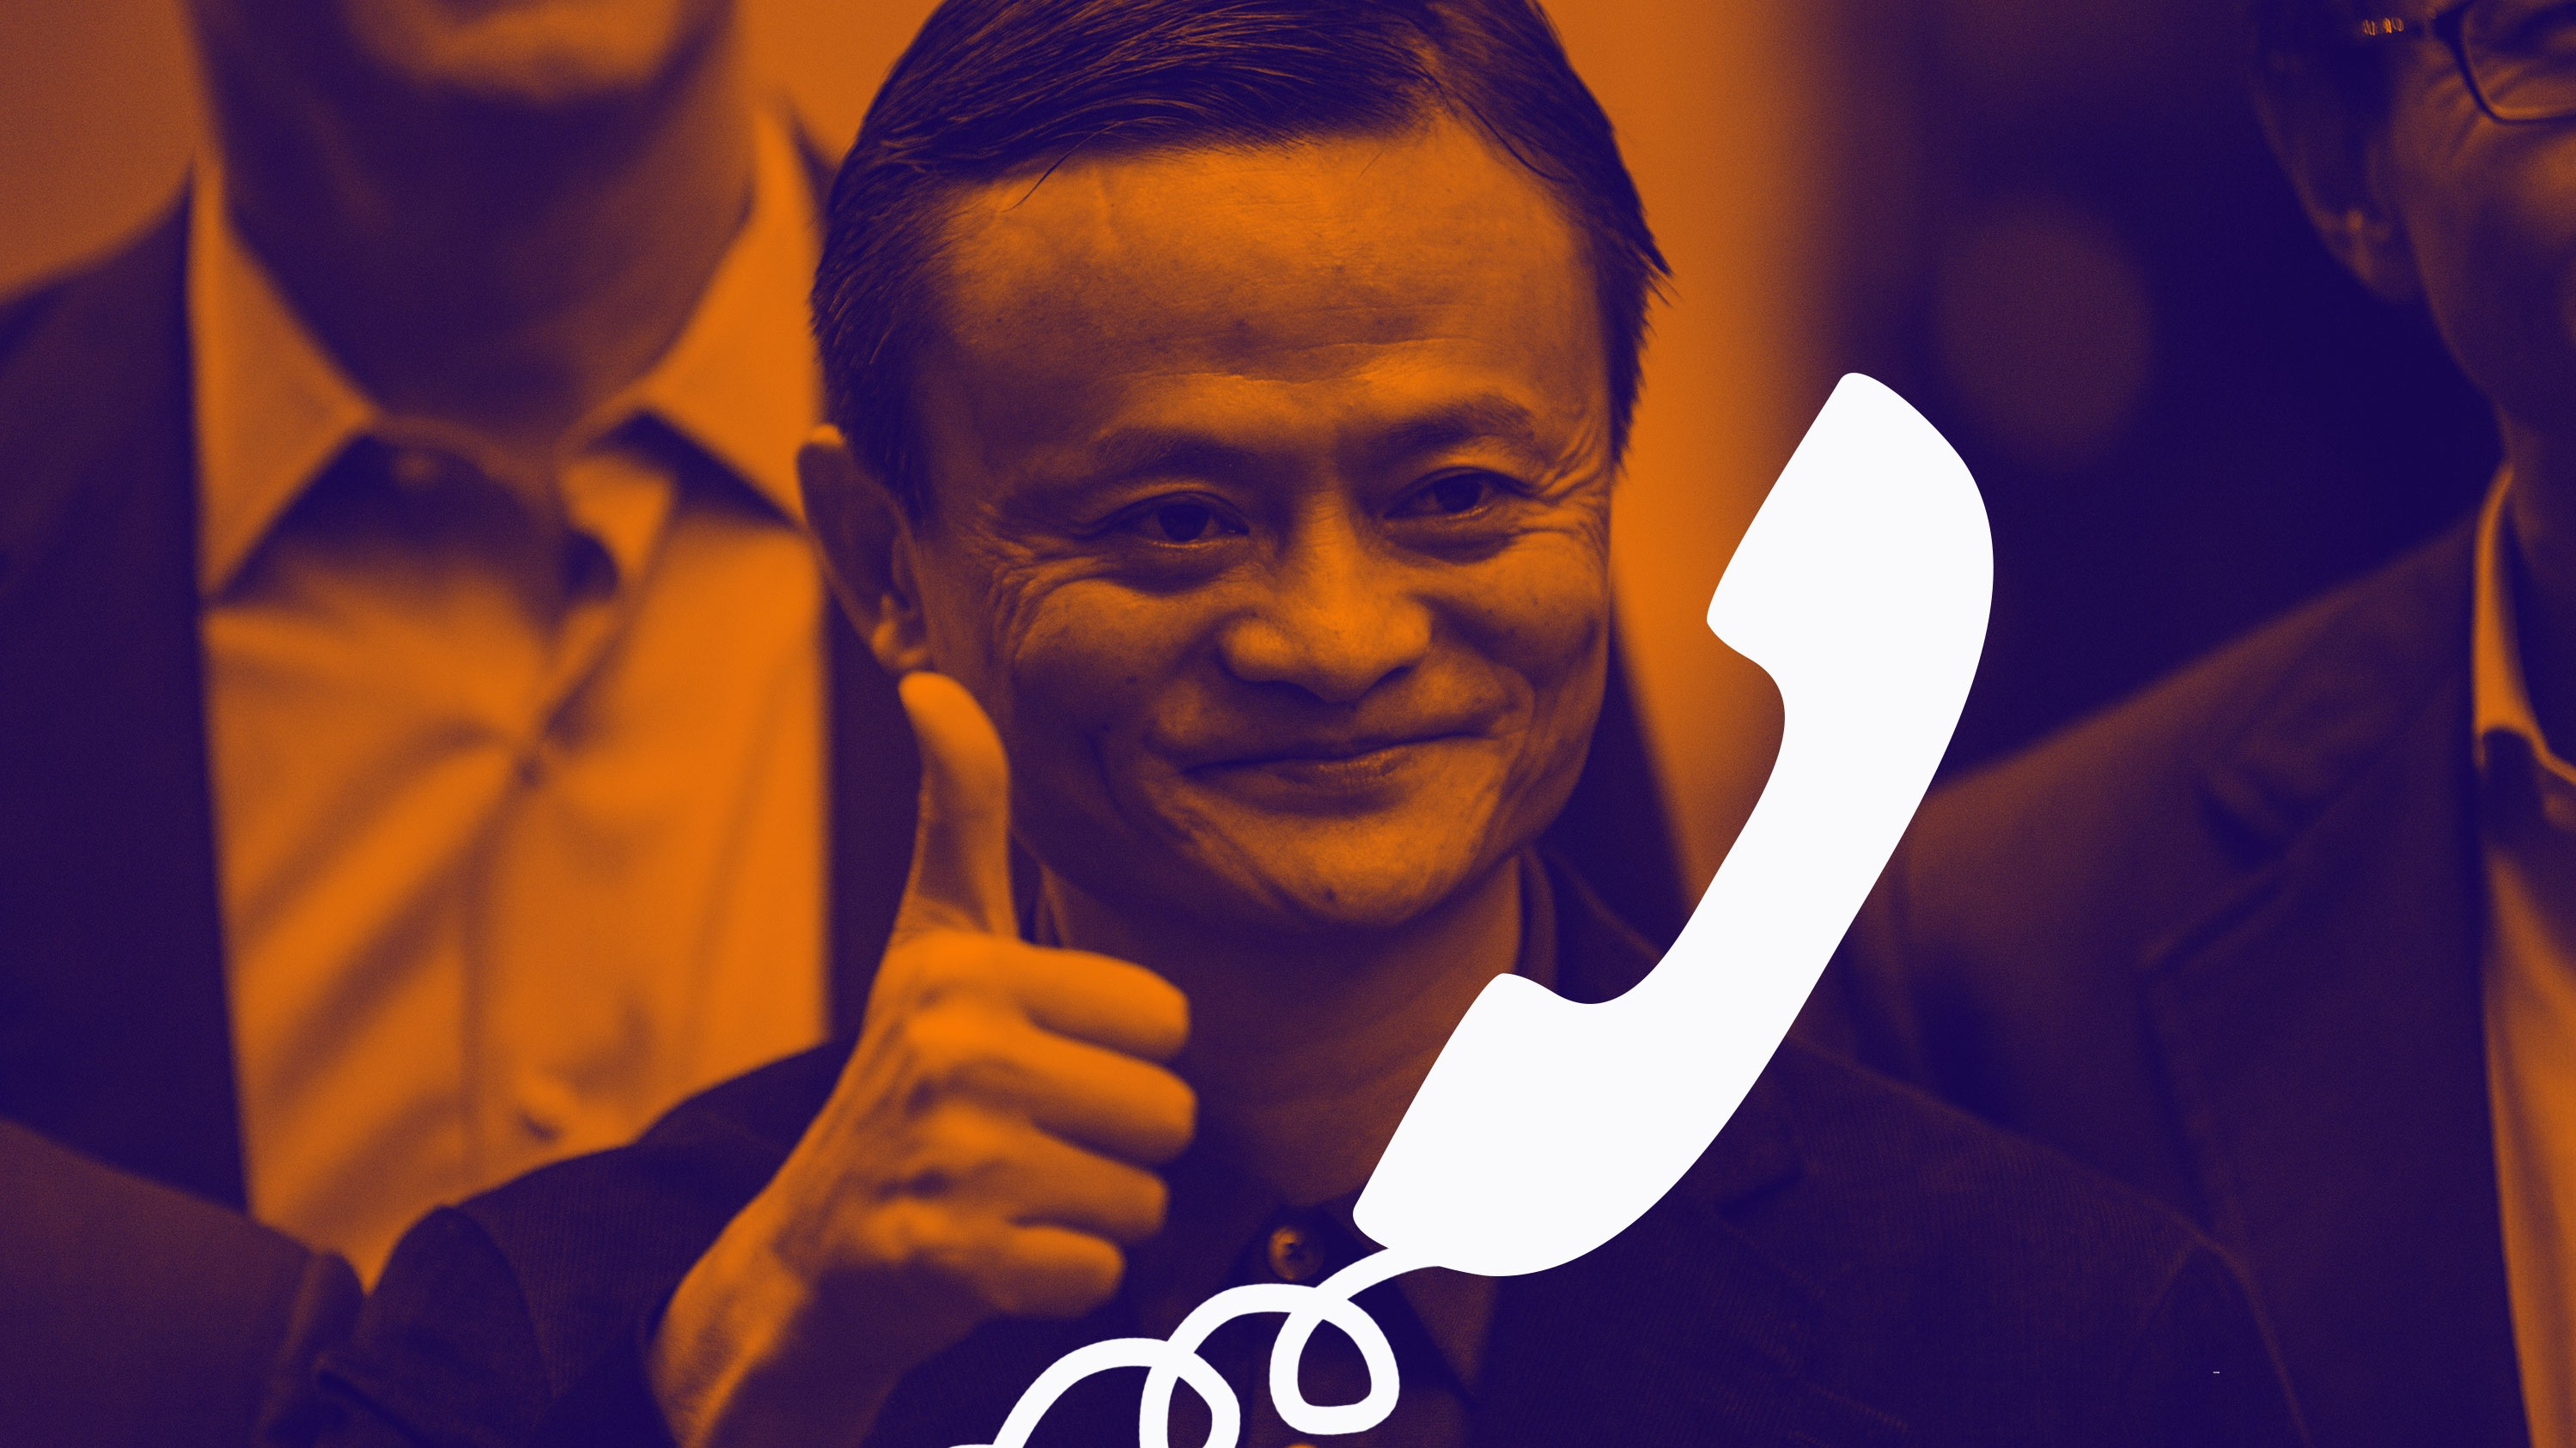 https://www.technologyreview.com/s/612511/alibaba-already-has-a-voice-assistant-way-better-than-googles/